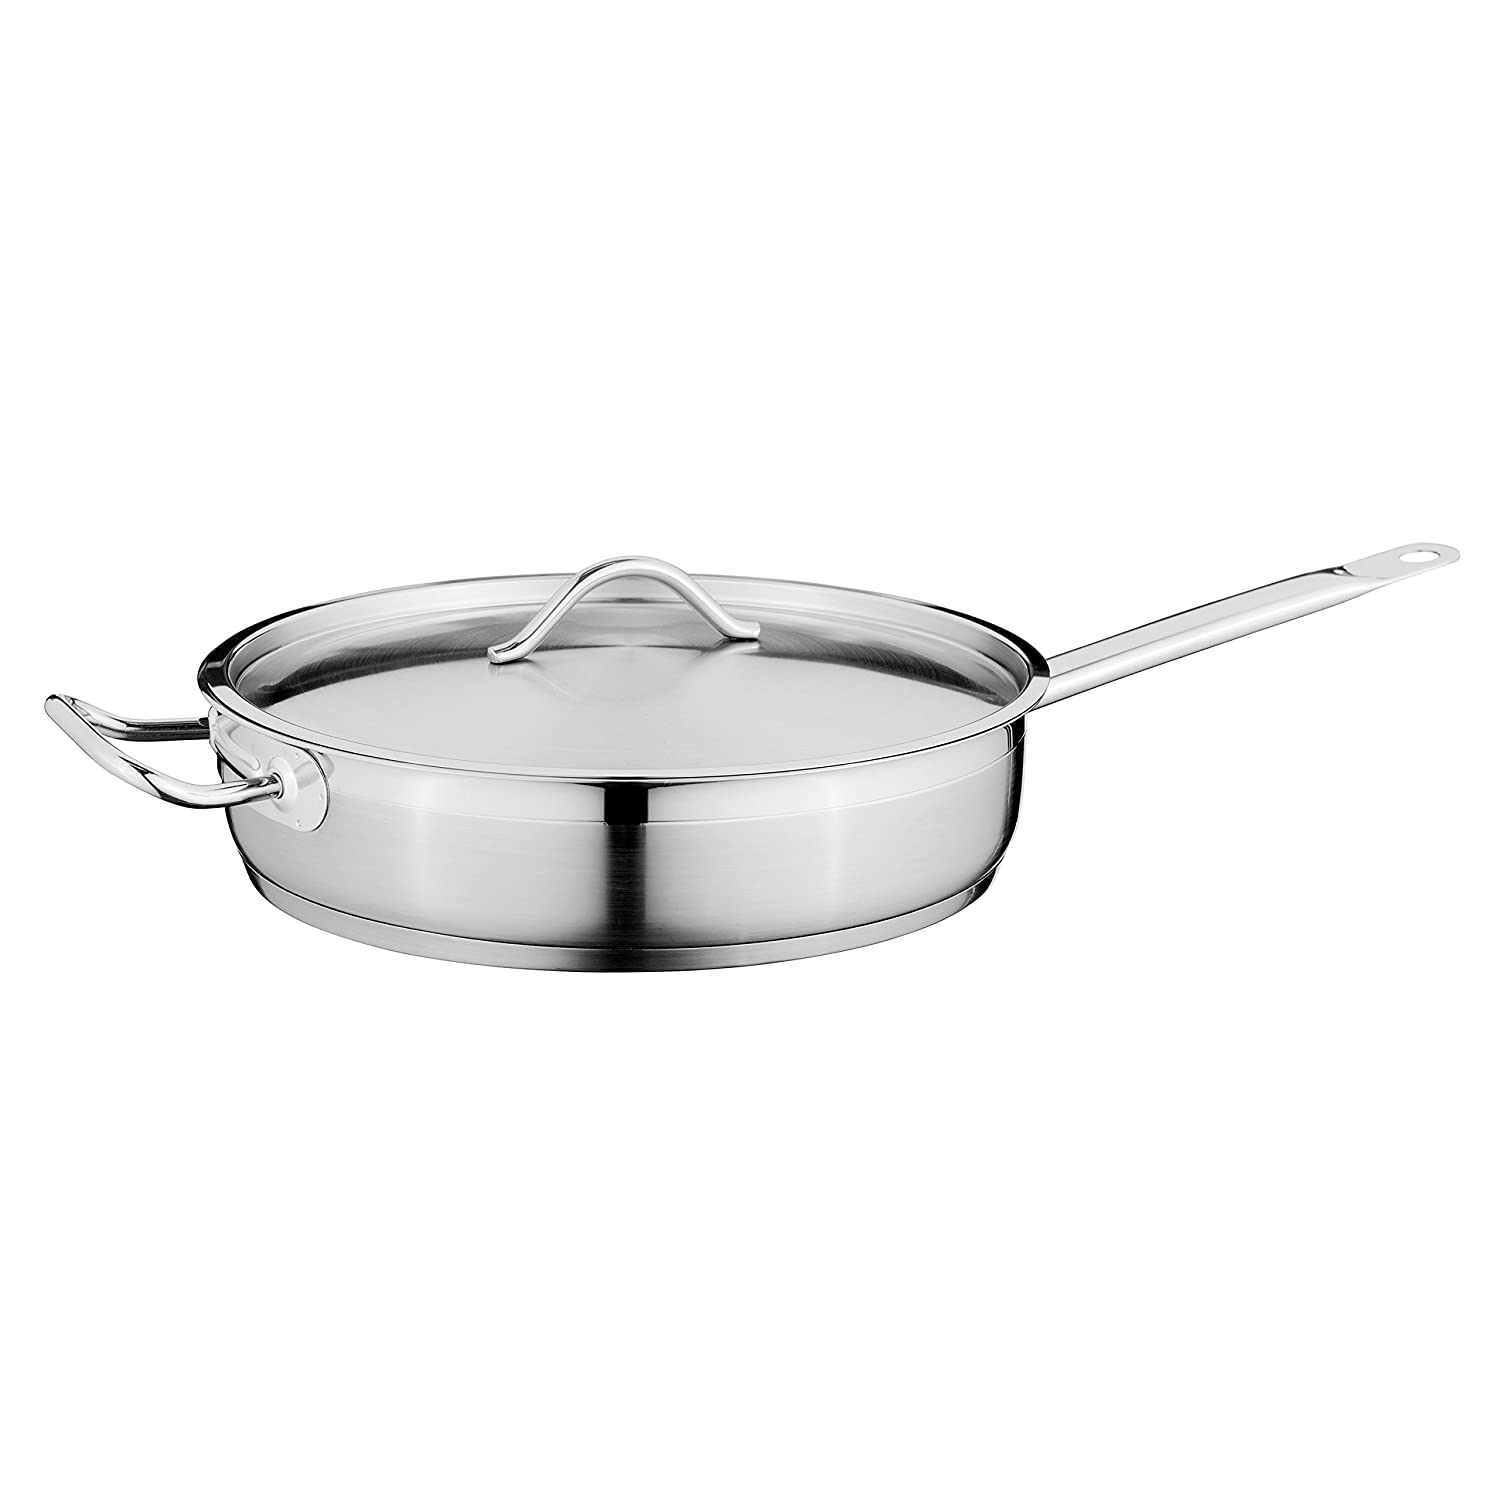 """Hotel 11"""" 18/10 Stainless Steel Covered Deep Skillet- Dishwsher and Oven Safe"""